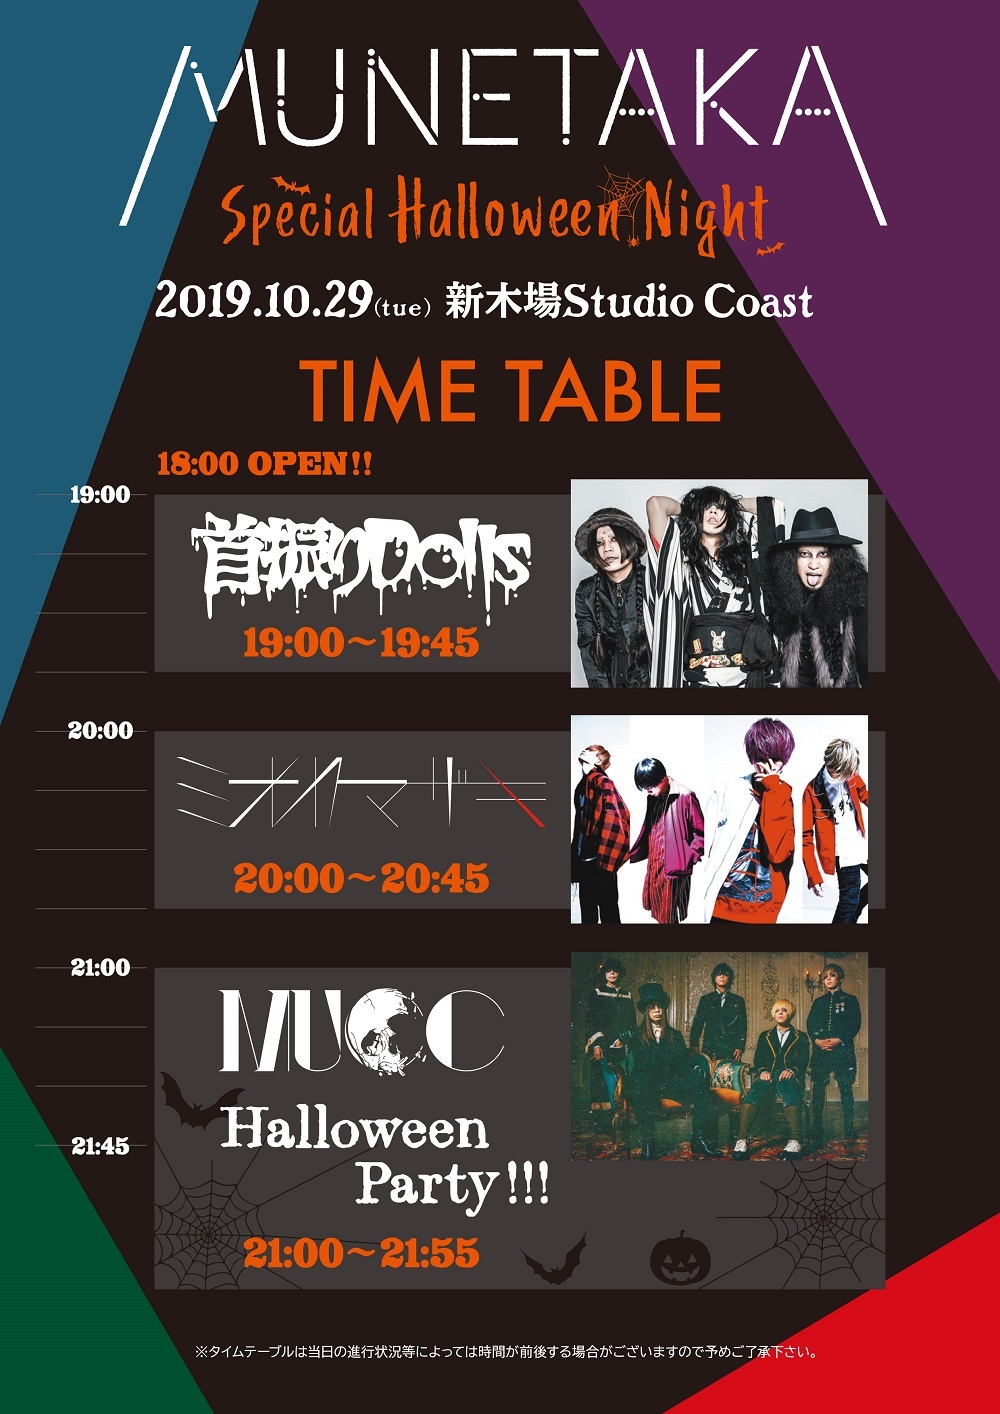 MUNETAKA Special Halloween Night